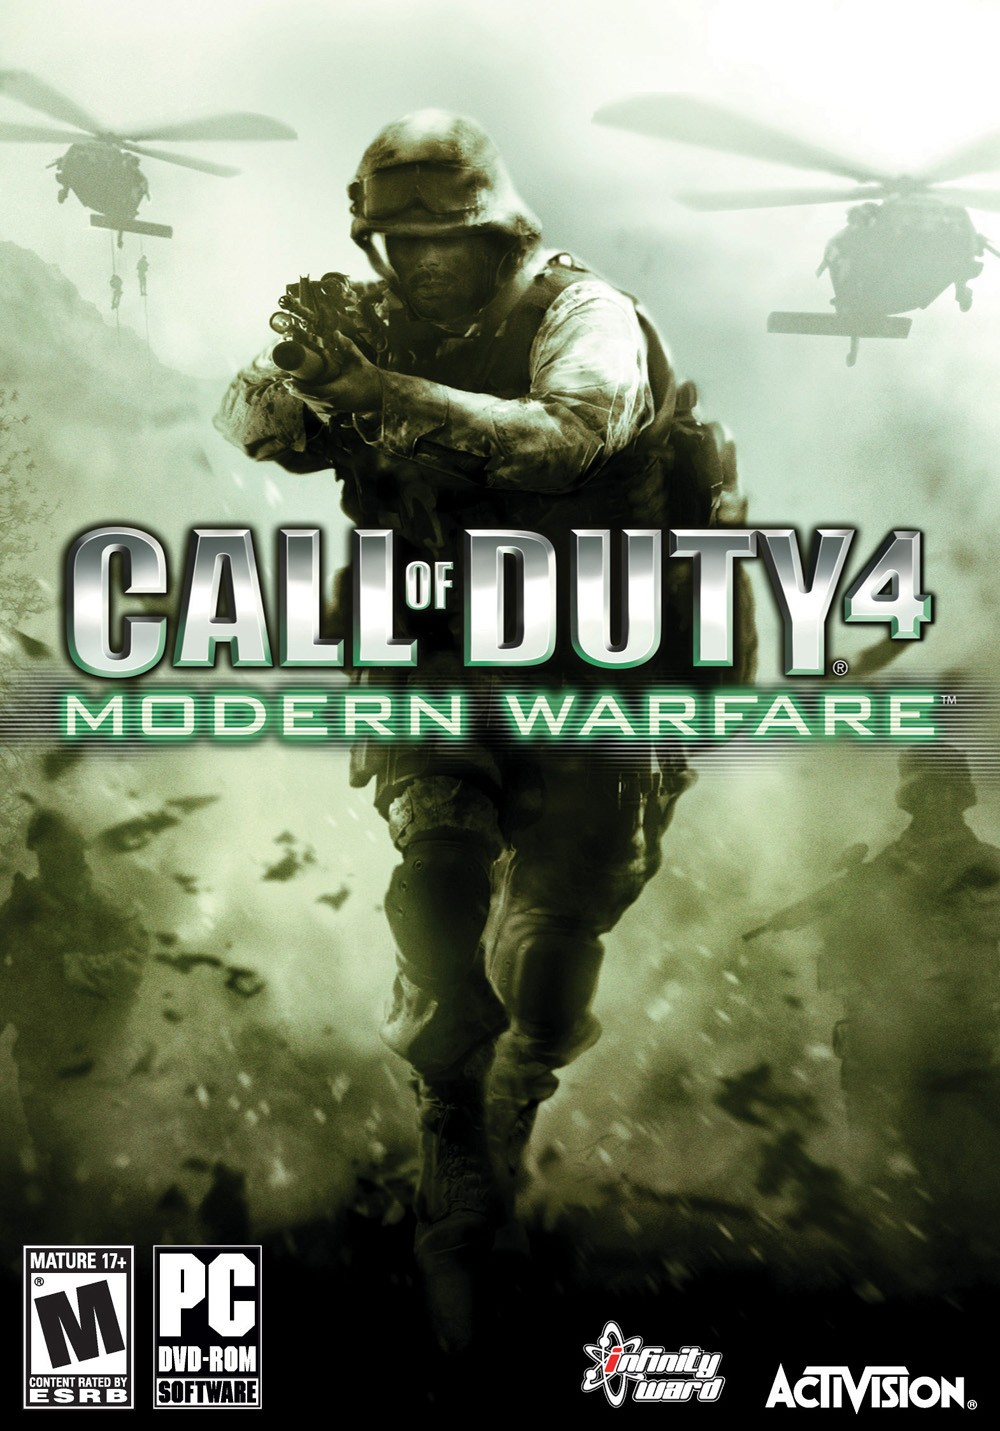 Call of Duty 4: Modern Warfare 使命召唤4:现代战争